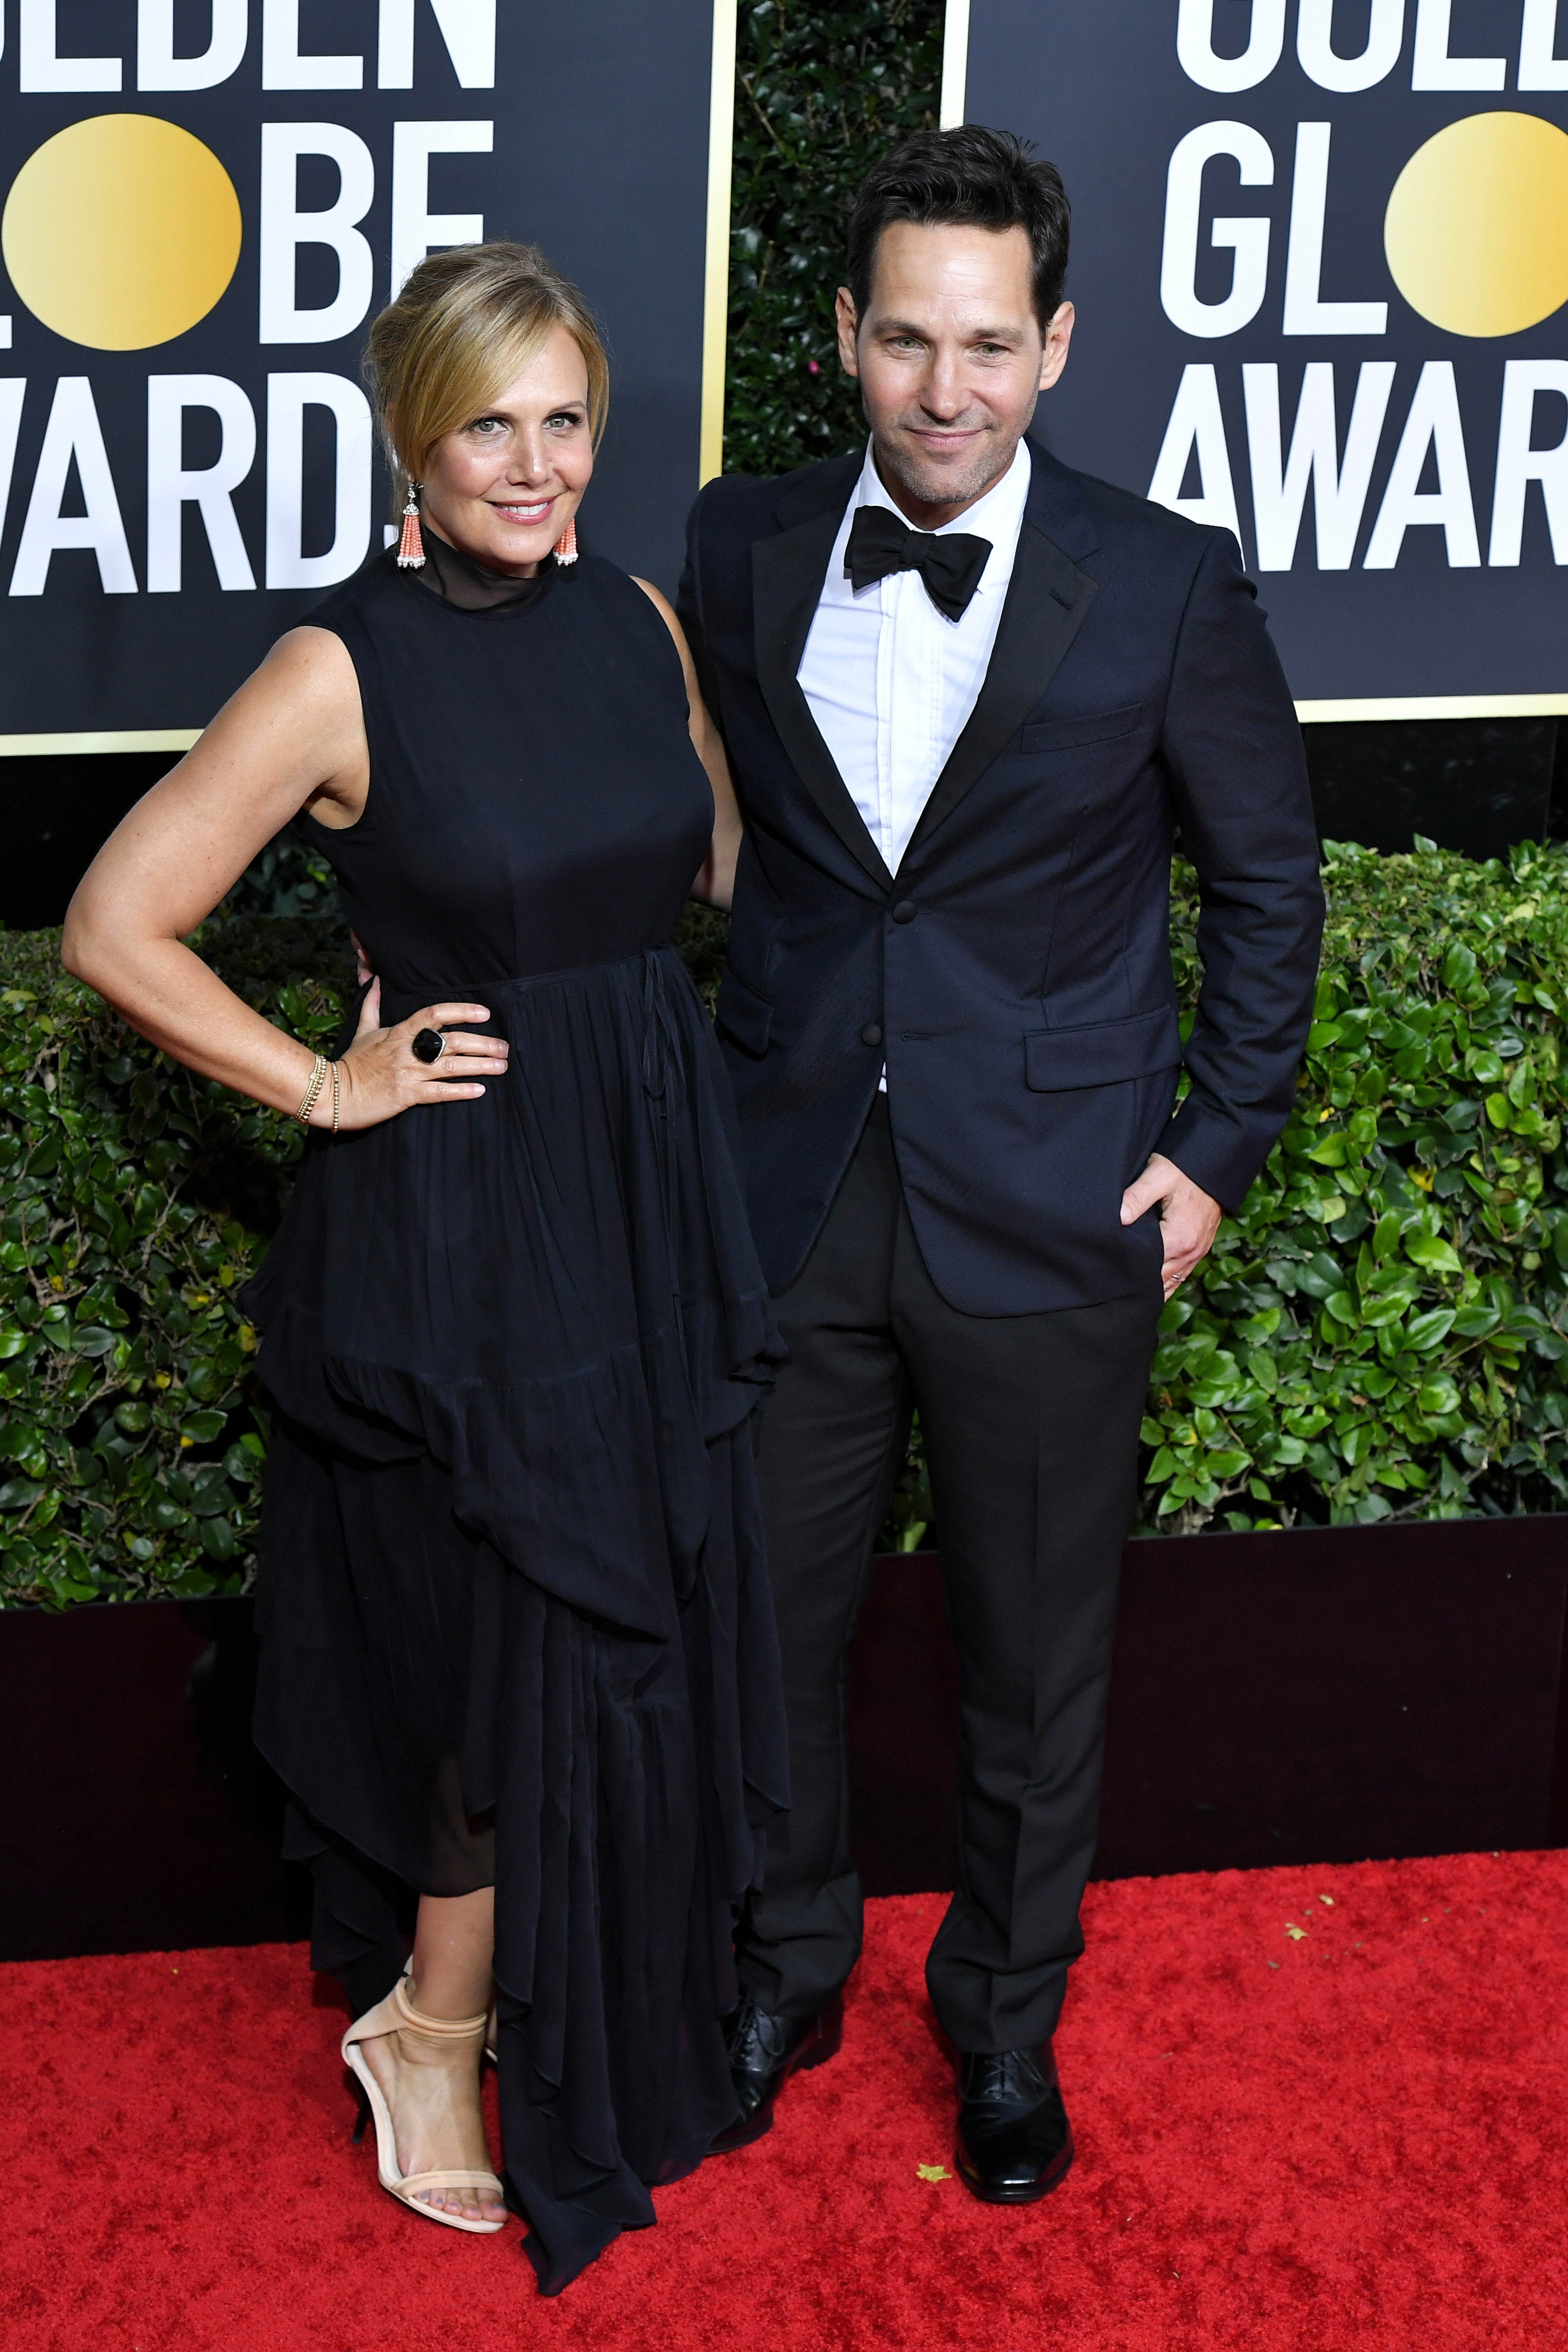 Julie Yaeger and Paul Rudd77th Annual Golden Globe Awards, Arrivals, Los Angeles, USA - 05 Jan 2020